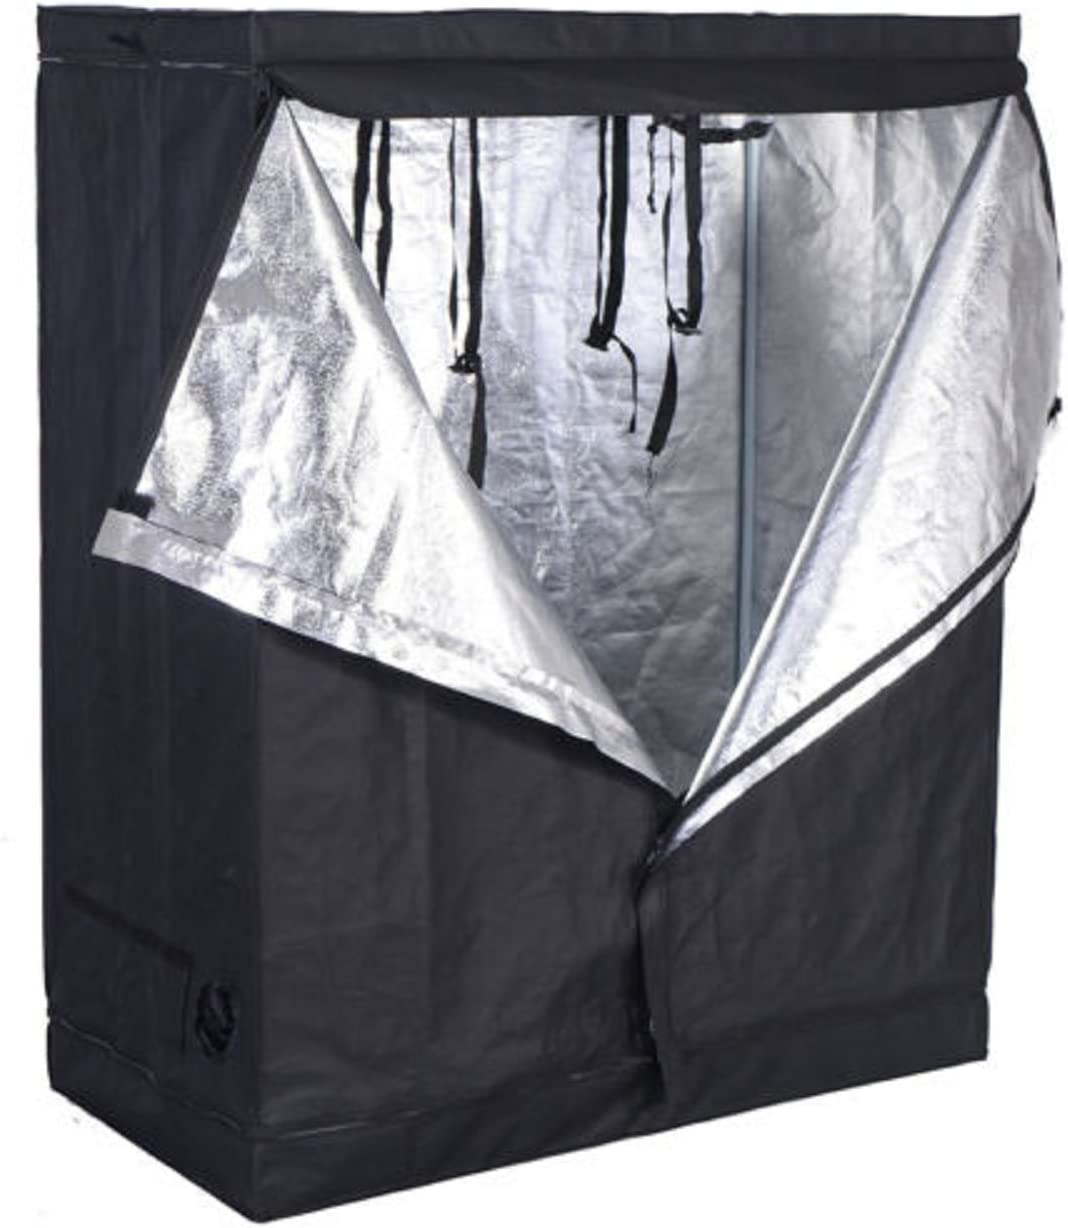 48 x24 x60 Grow Tent Non Toxic Reflective Mylar Room Box 48 x24 x60 Indoor Plant Hut Hydroponic